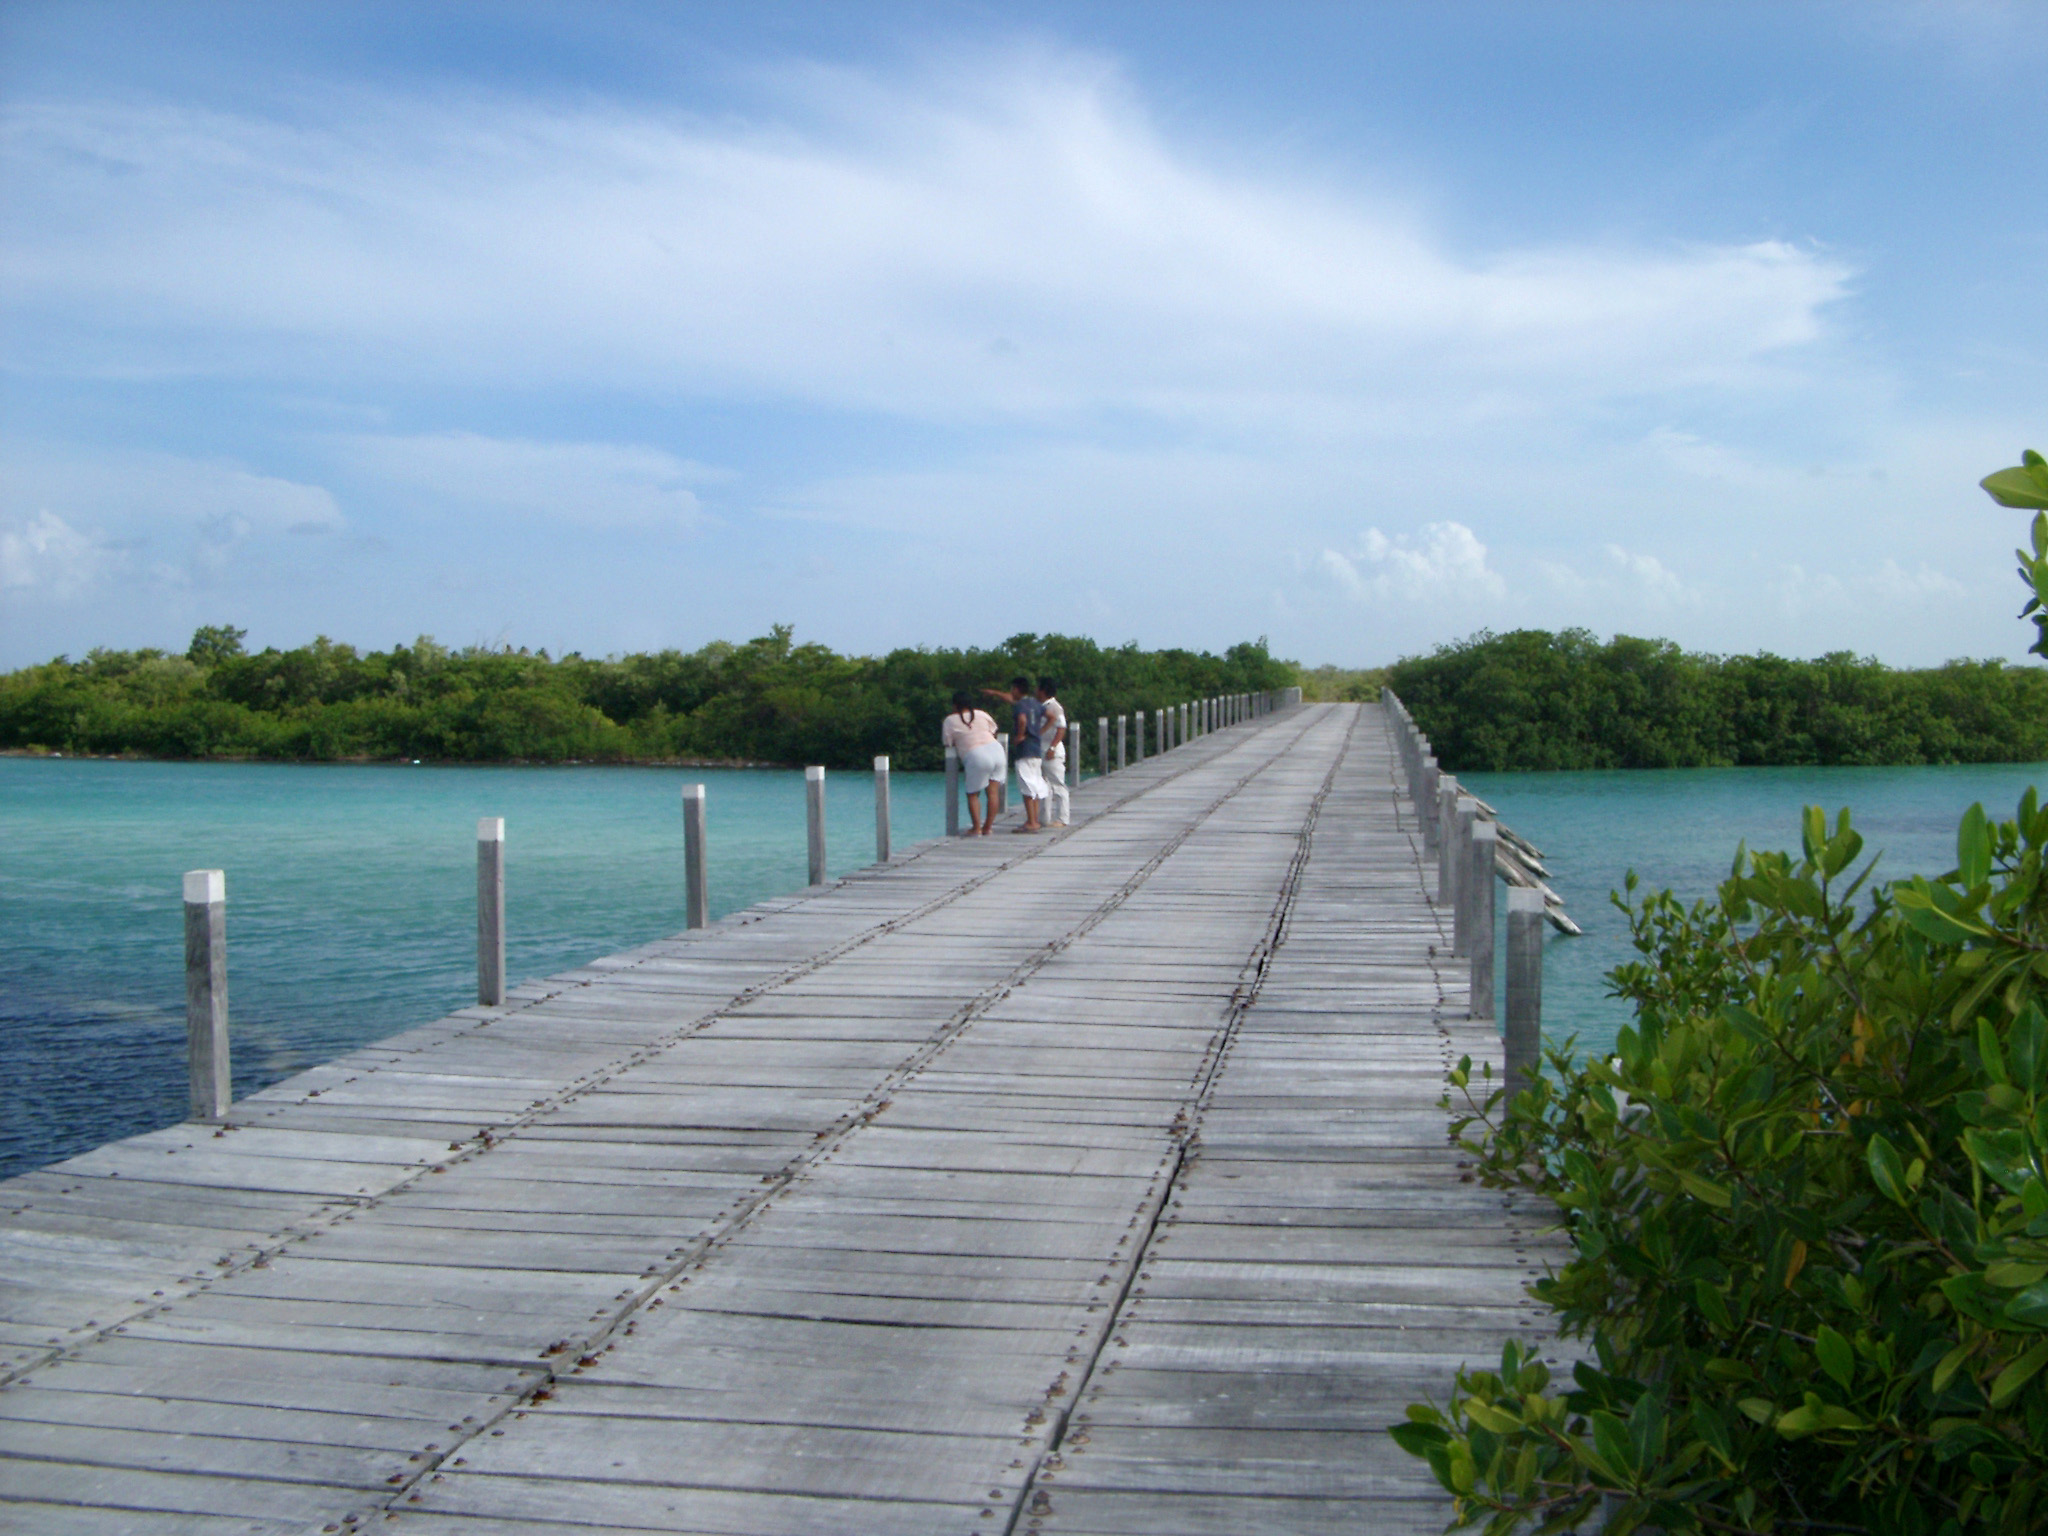 Wooden road bridge in Mexico composed of individual planks crossing a stretch of turquoise blue water with tourists or pedestrians standing in the middle